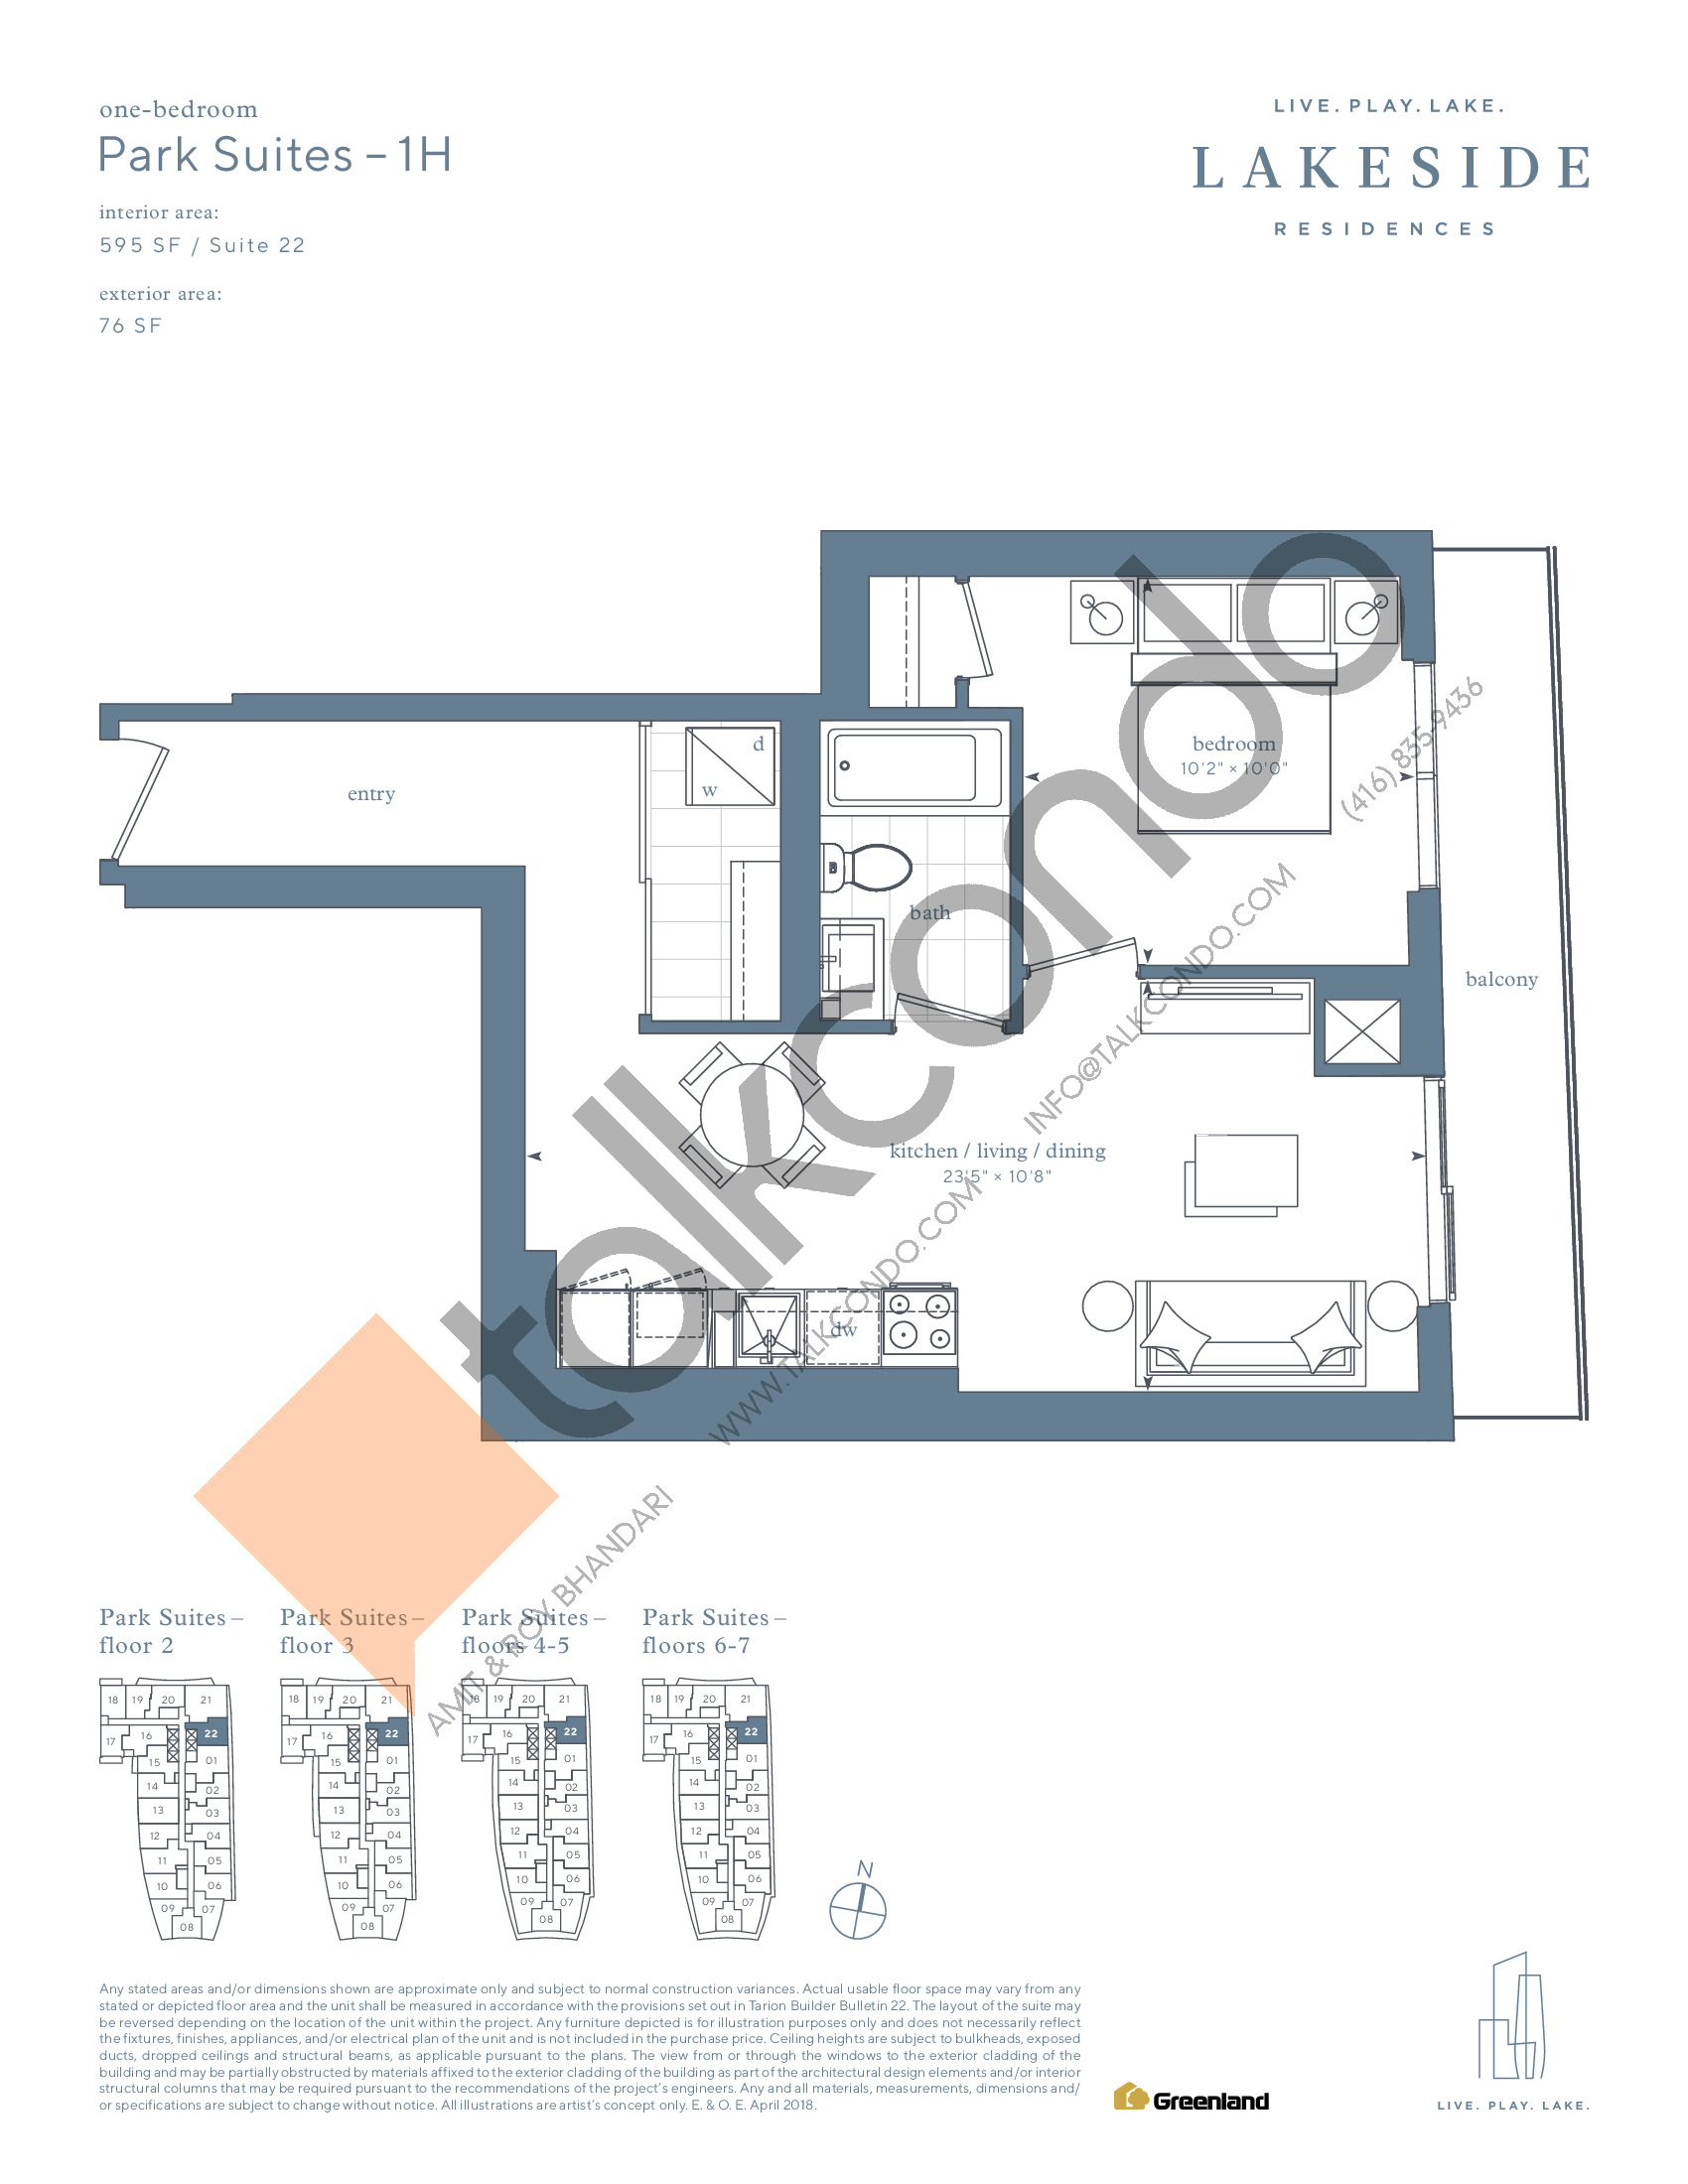 Park Suites - 1H Floor Plan at Lakeside Residences - 595 sq.ft